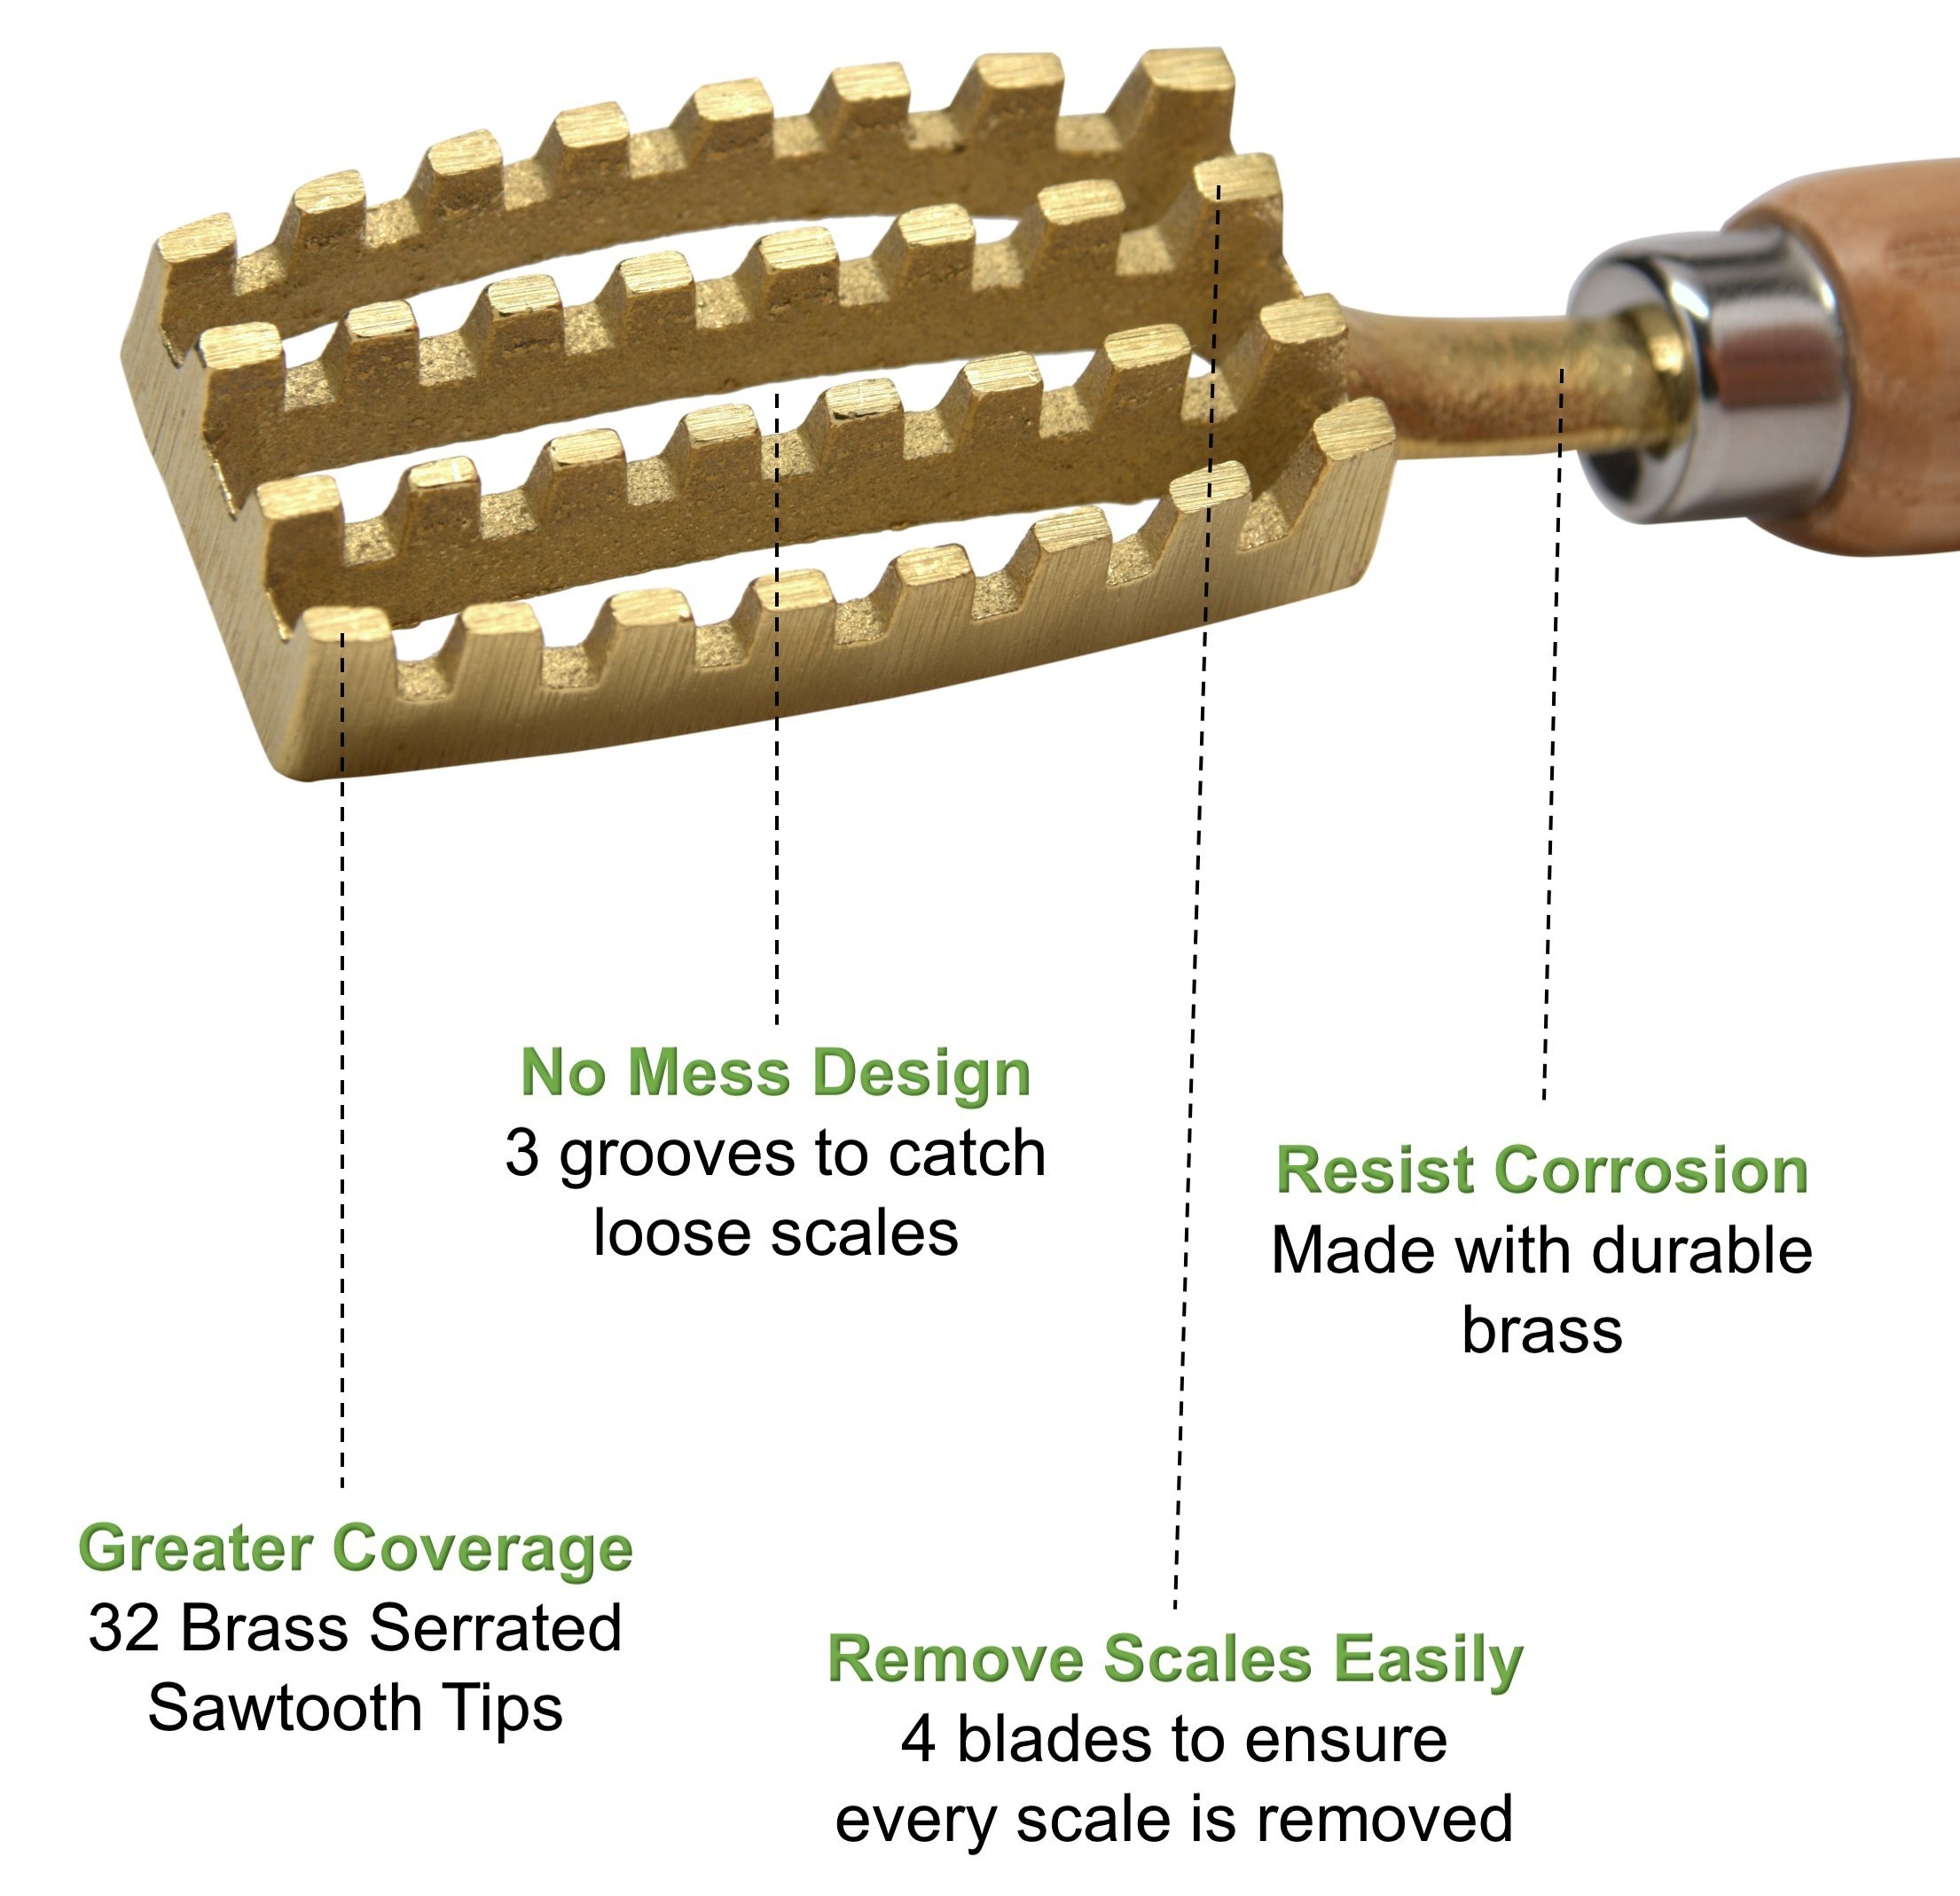 Kwizing Made in Japan Fish Scaler Brush with Brass Serrated Sawtooth and Ergonomic Wooden Handle - Easily Remove Fish Scales Without Fuss Or Mess - Handcrafted by Japanese Artisans by Kwizing (Image #3)